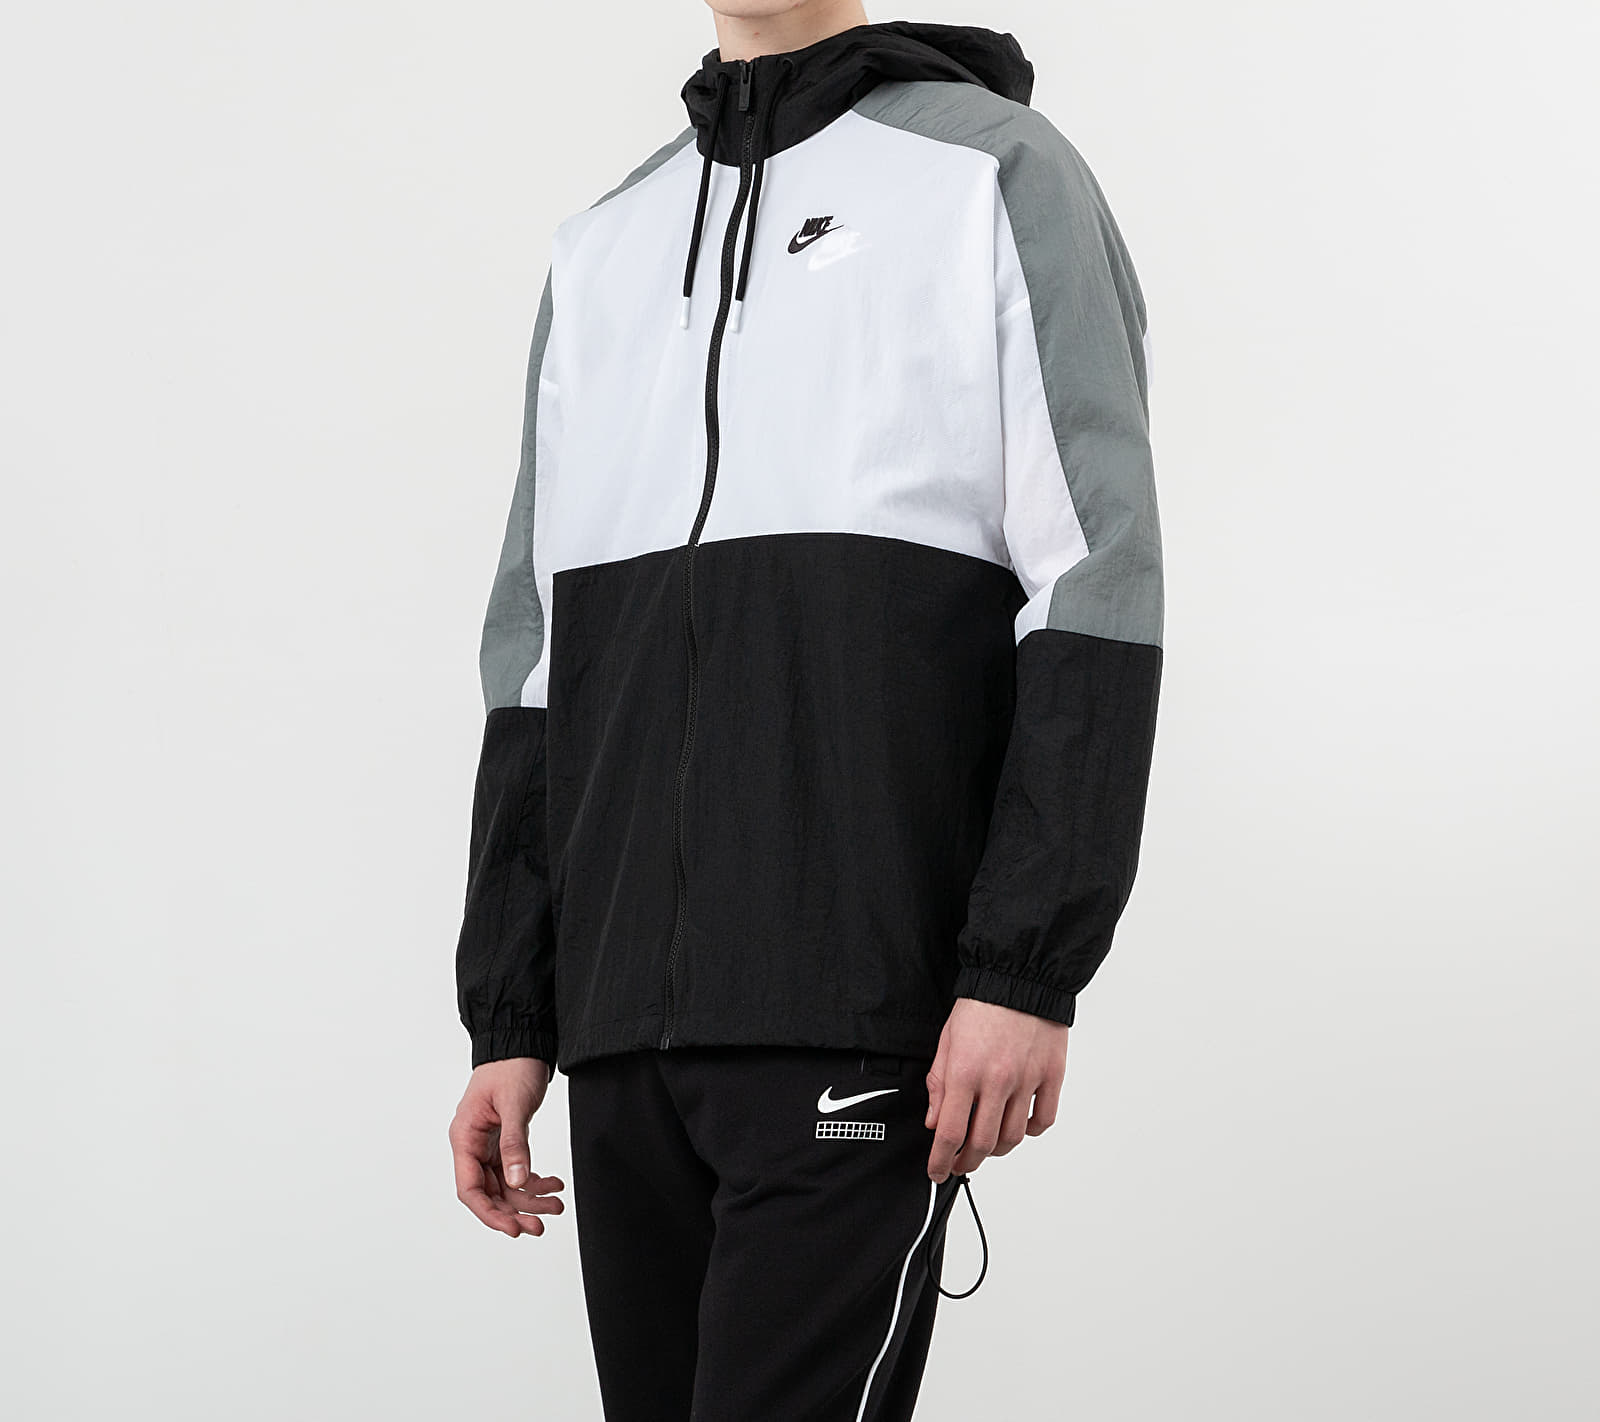 Nike Sportswear Hooded Woven Jacket Black/ White/ Smoke Grey/ Black